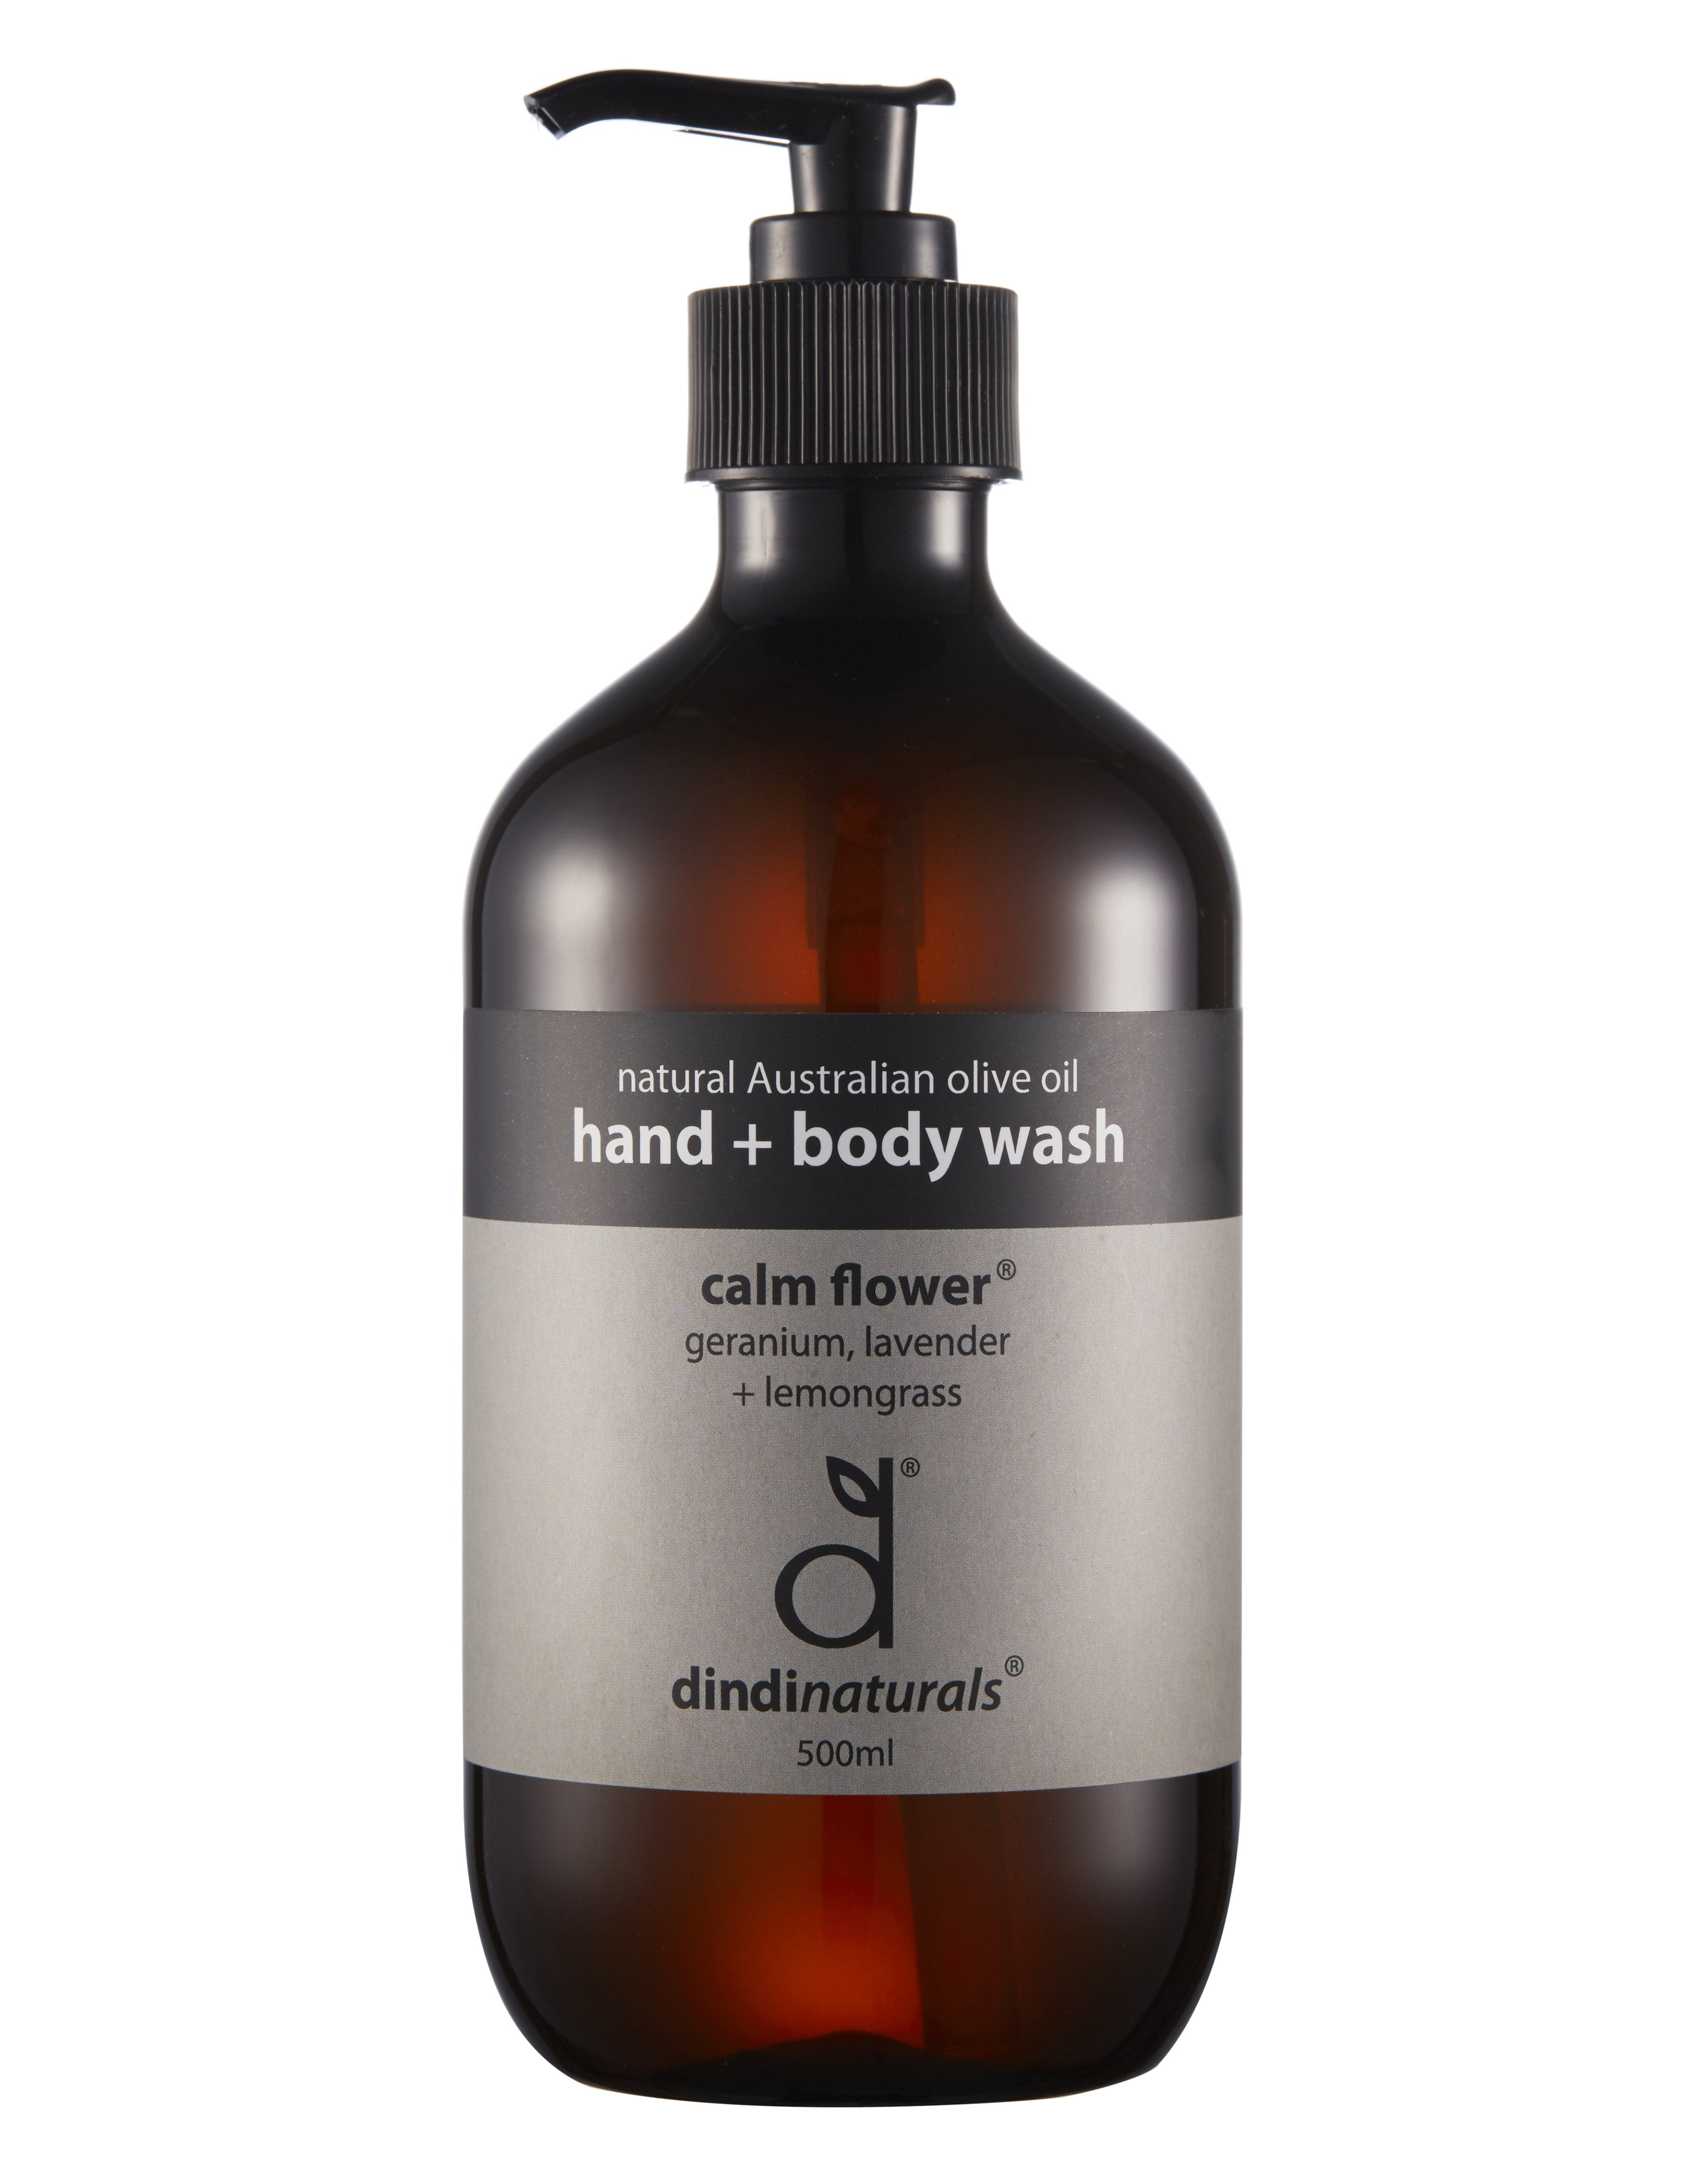 hand + body wash calm flower 500ml #5517 (rrp$24) x 3pk